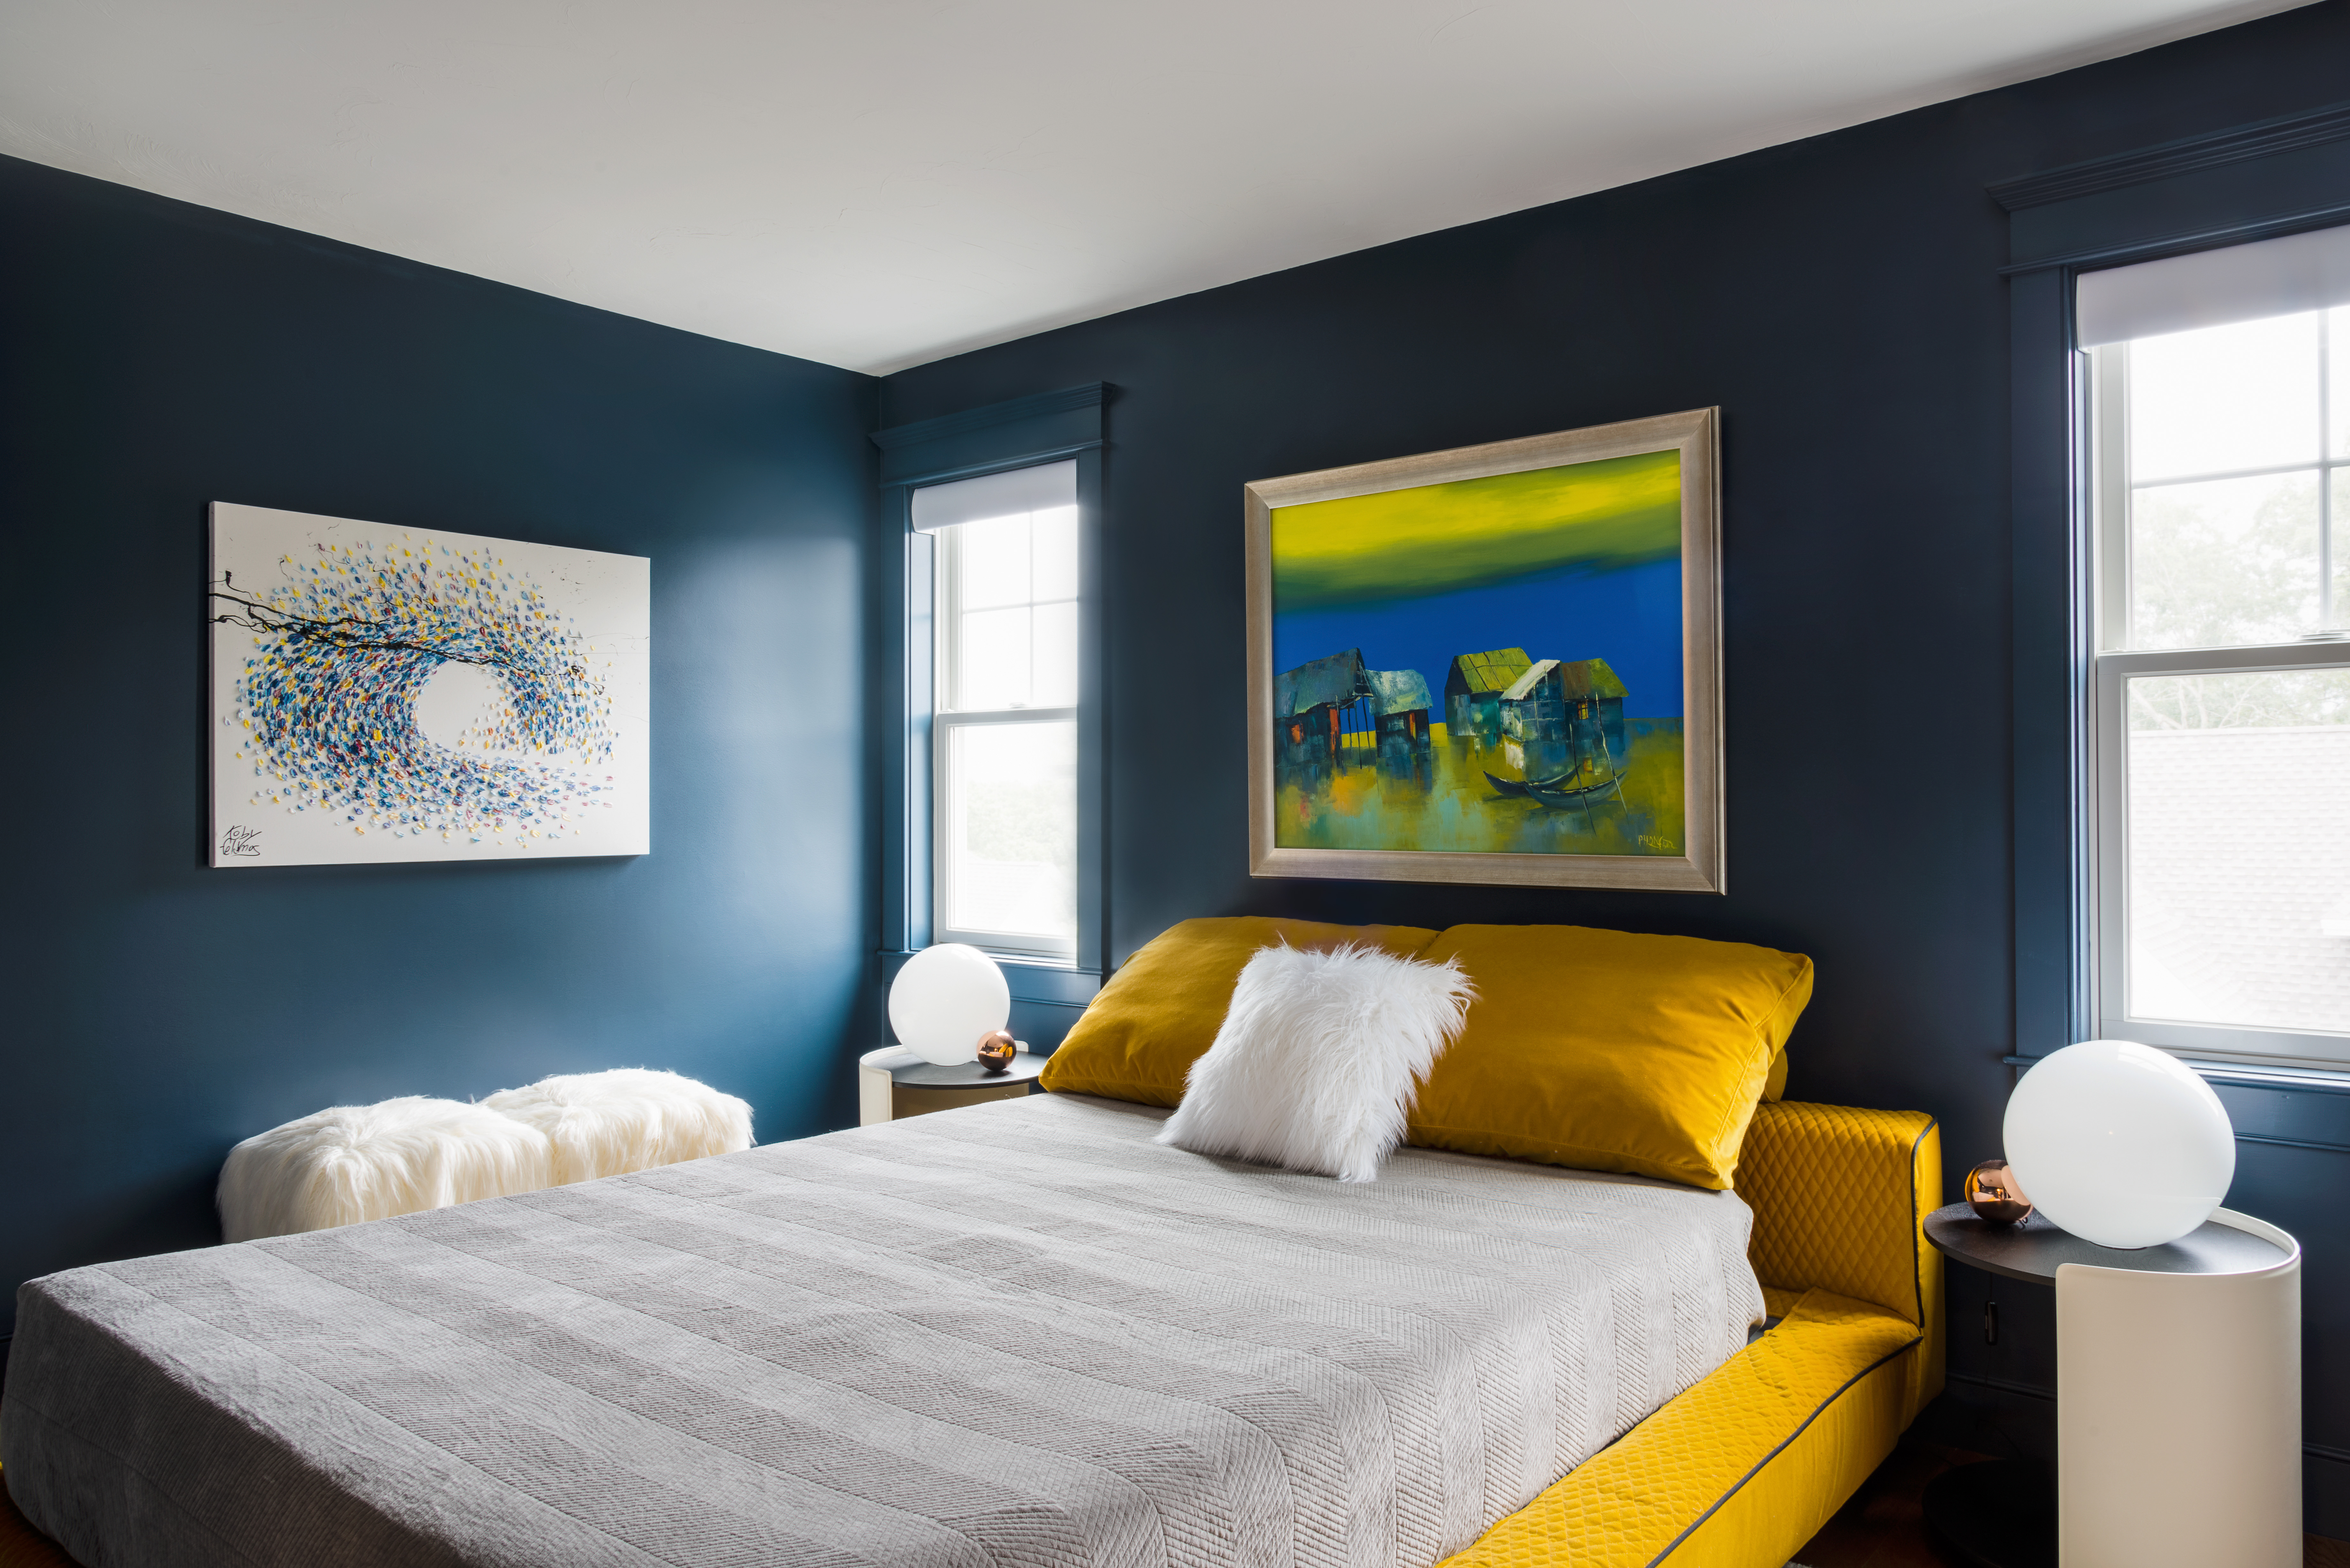 Boston Magazine - A Bland Bedroom Gets a Bold, Modern Makeover